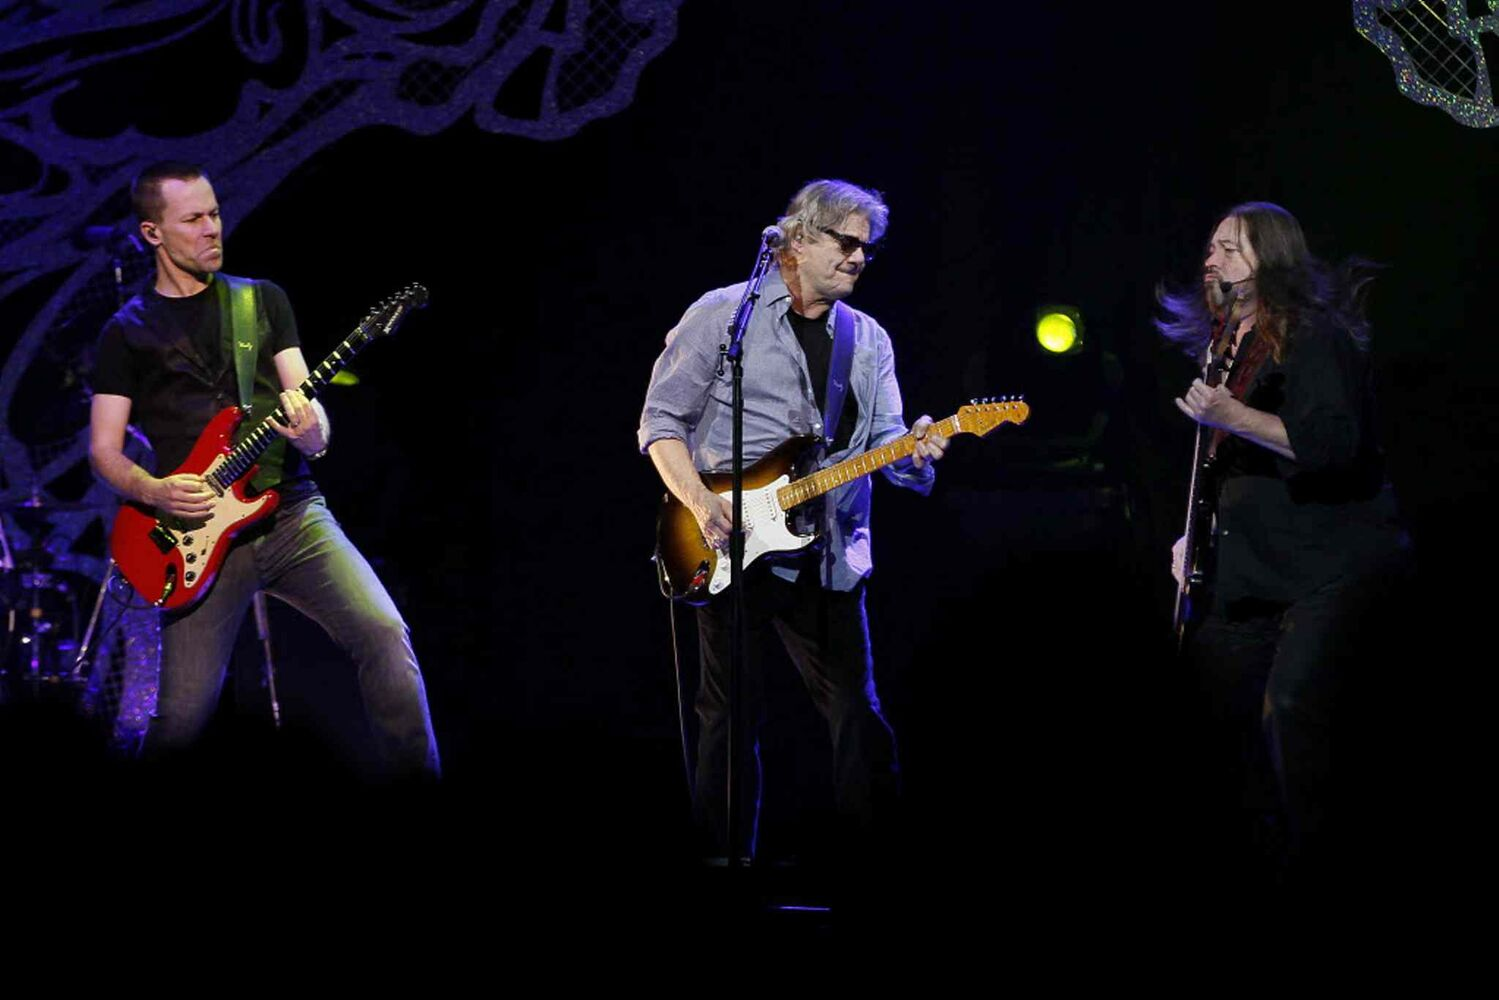 Steve Miller Band rocks the house at MTS Centre in Winnipeg Friday, April 4.